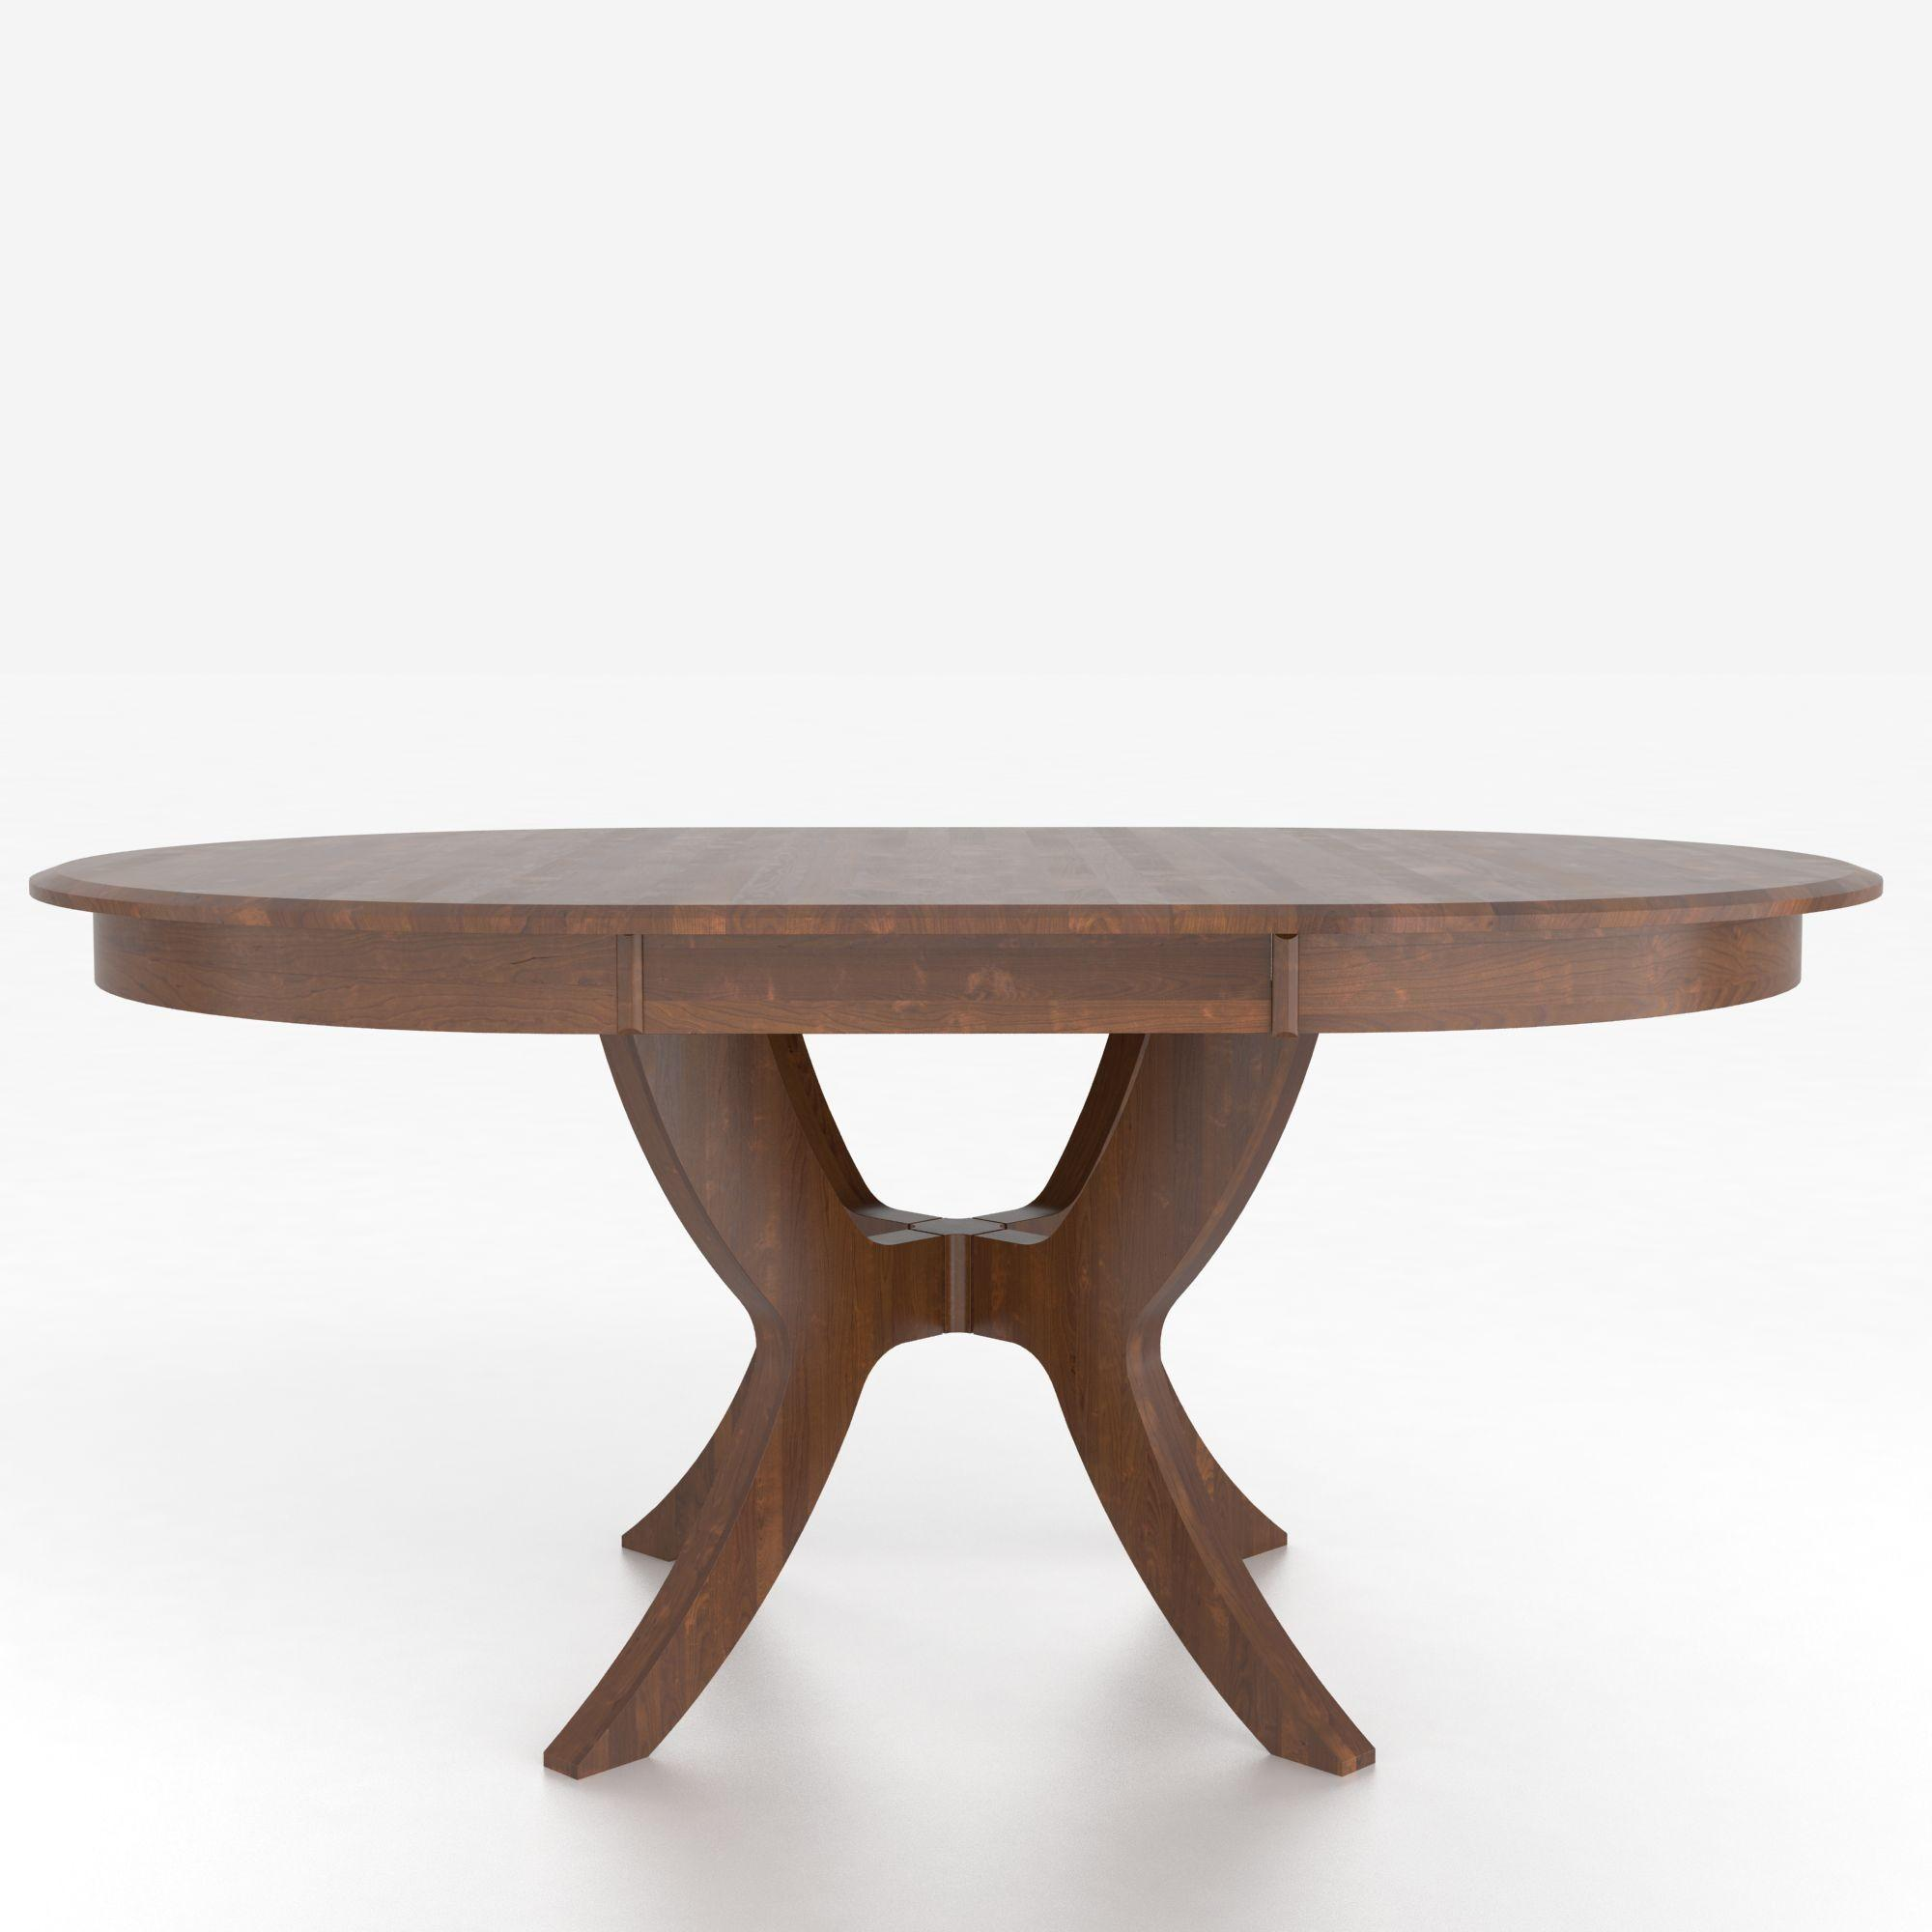 Customizable Round Table with Pedestal